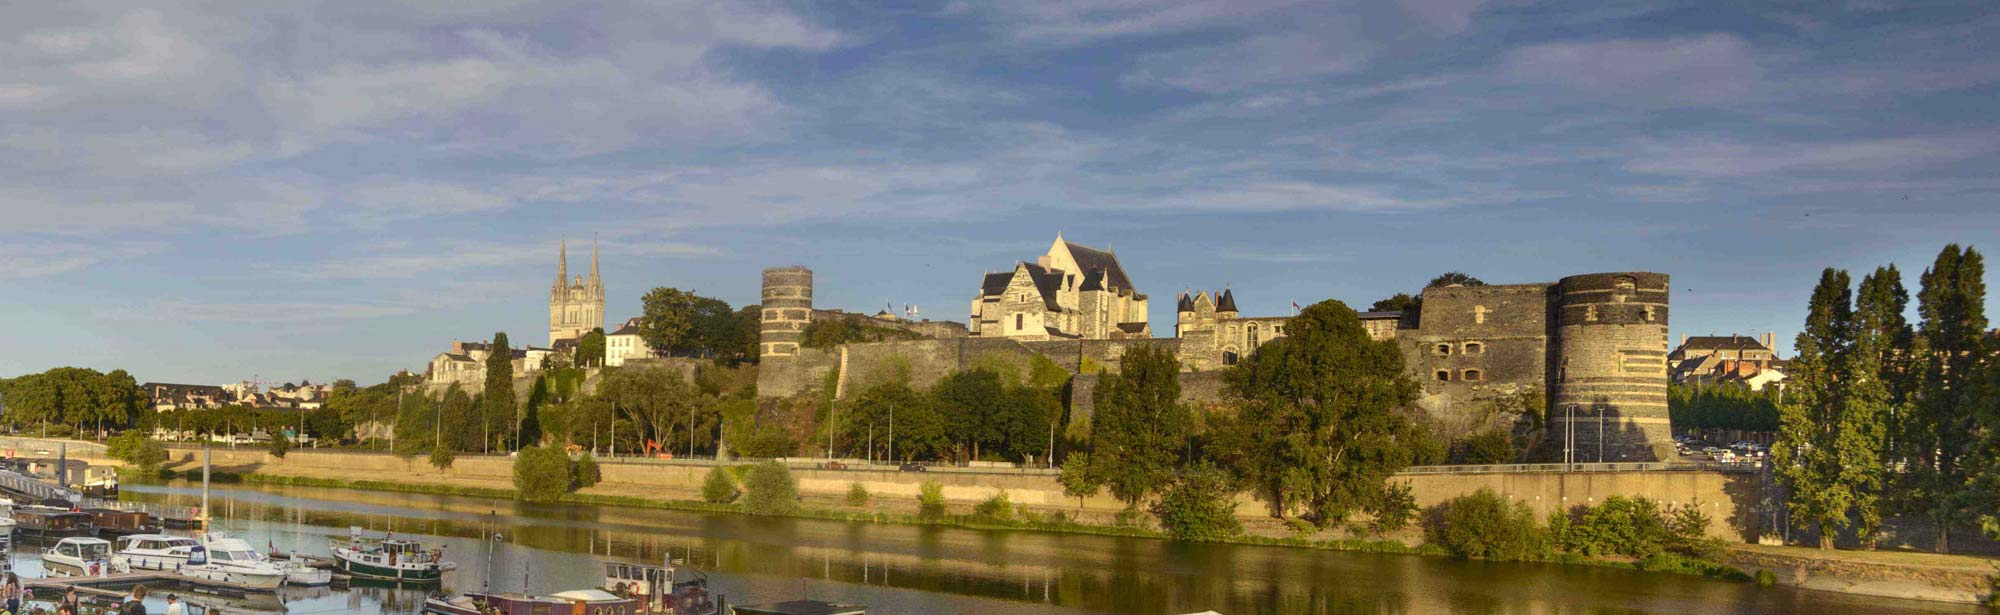 Angers paysage voyages cartes for Agence paysage angers